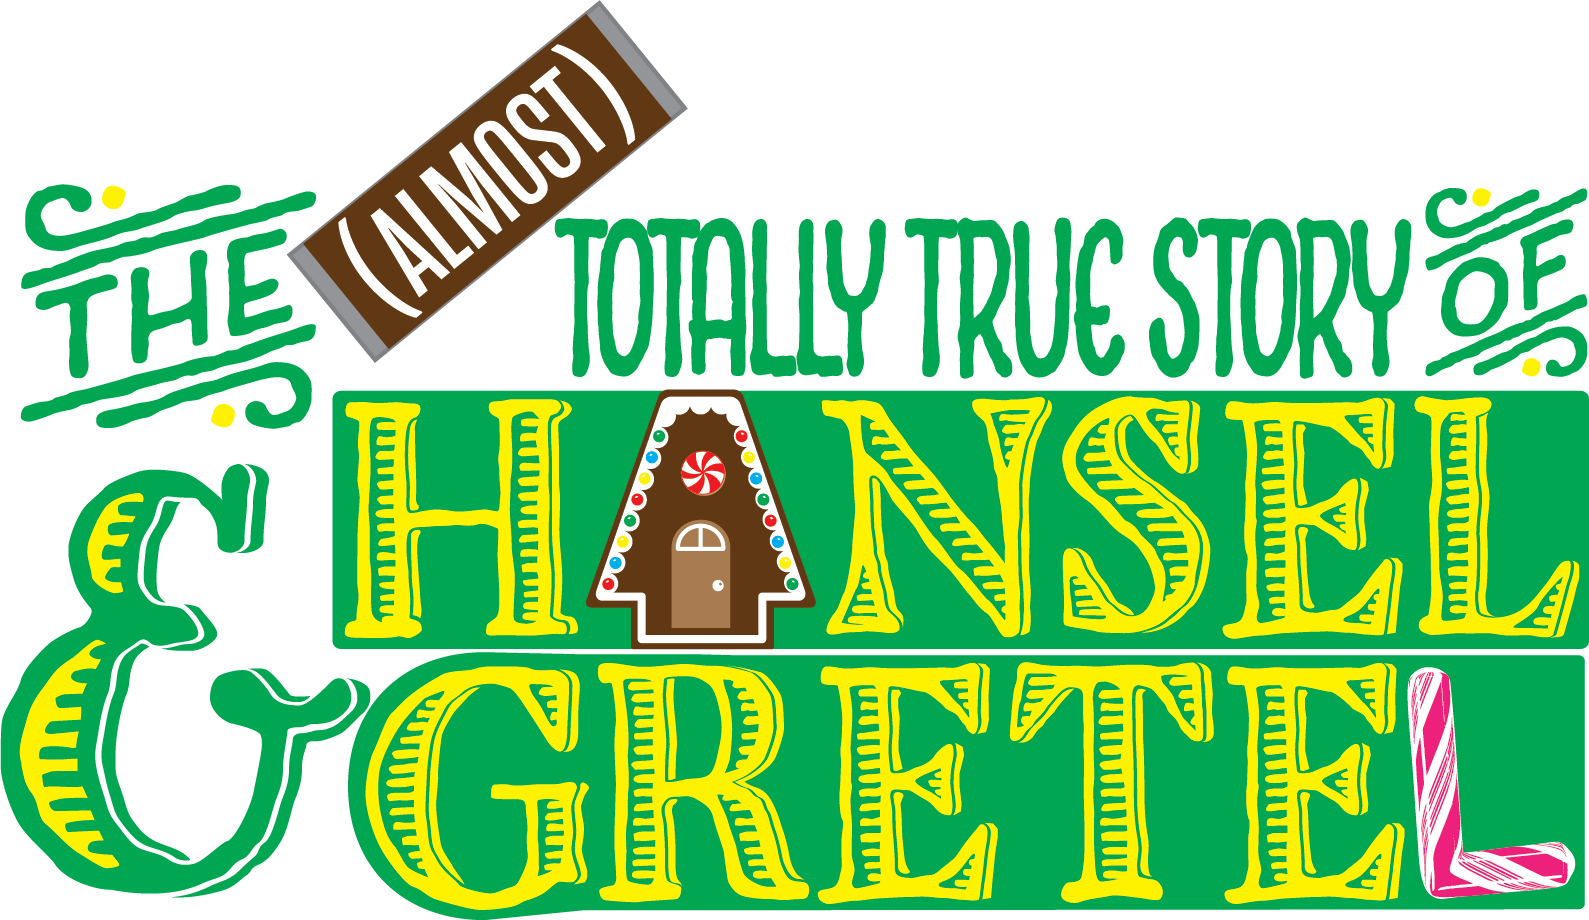 the almost totally true story of hansel & gretel logo